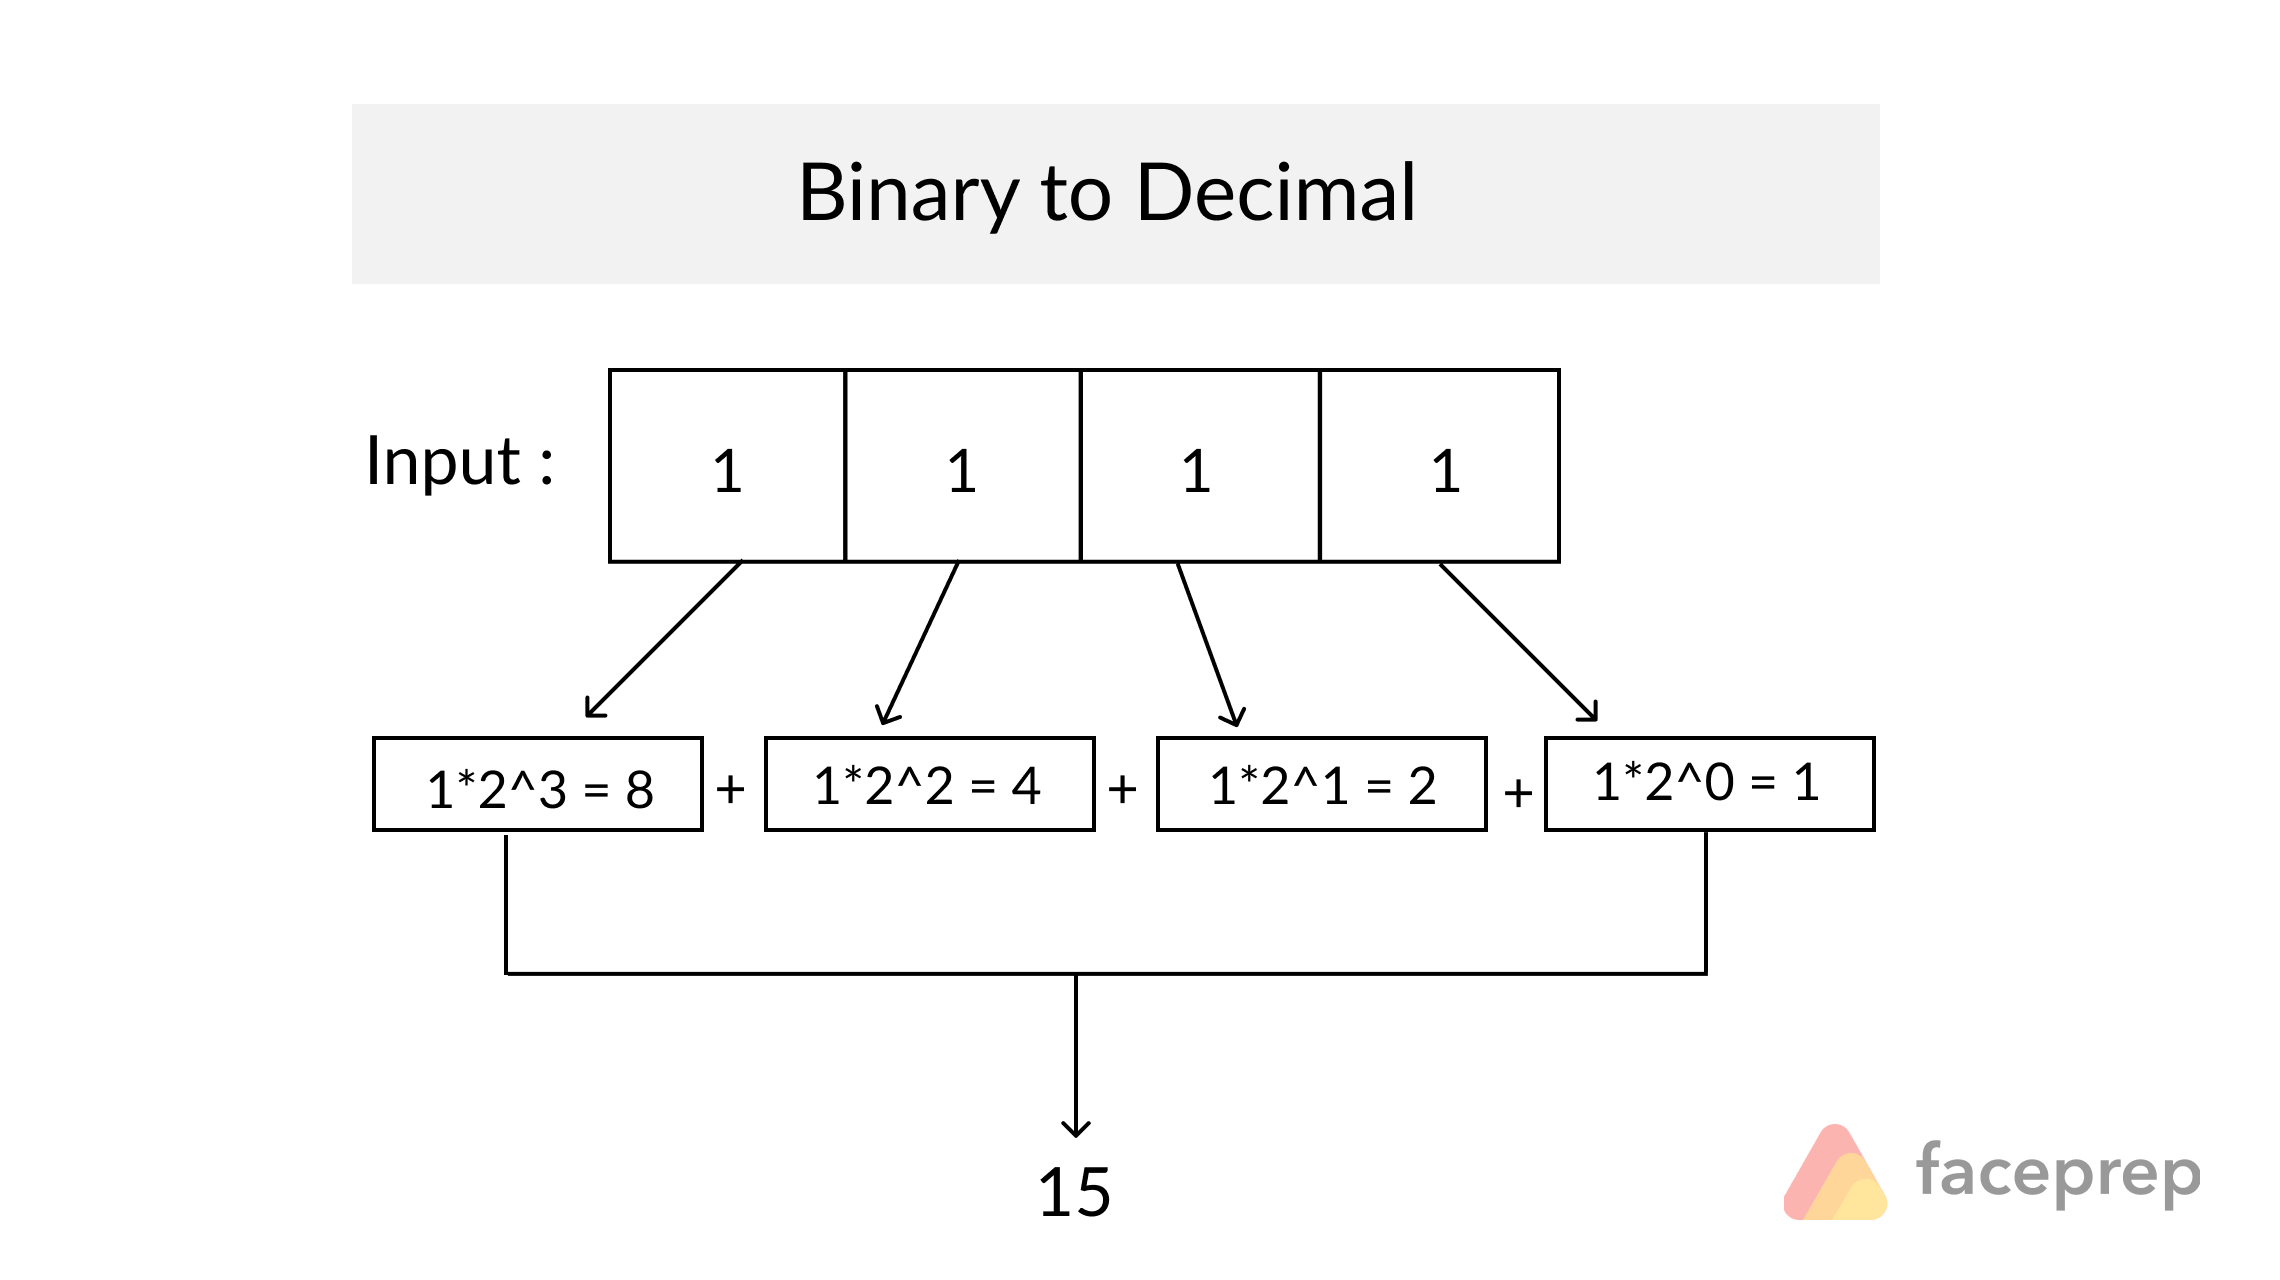 Convert The Given Binary Number Into Decimal